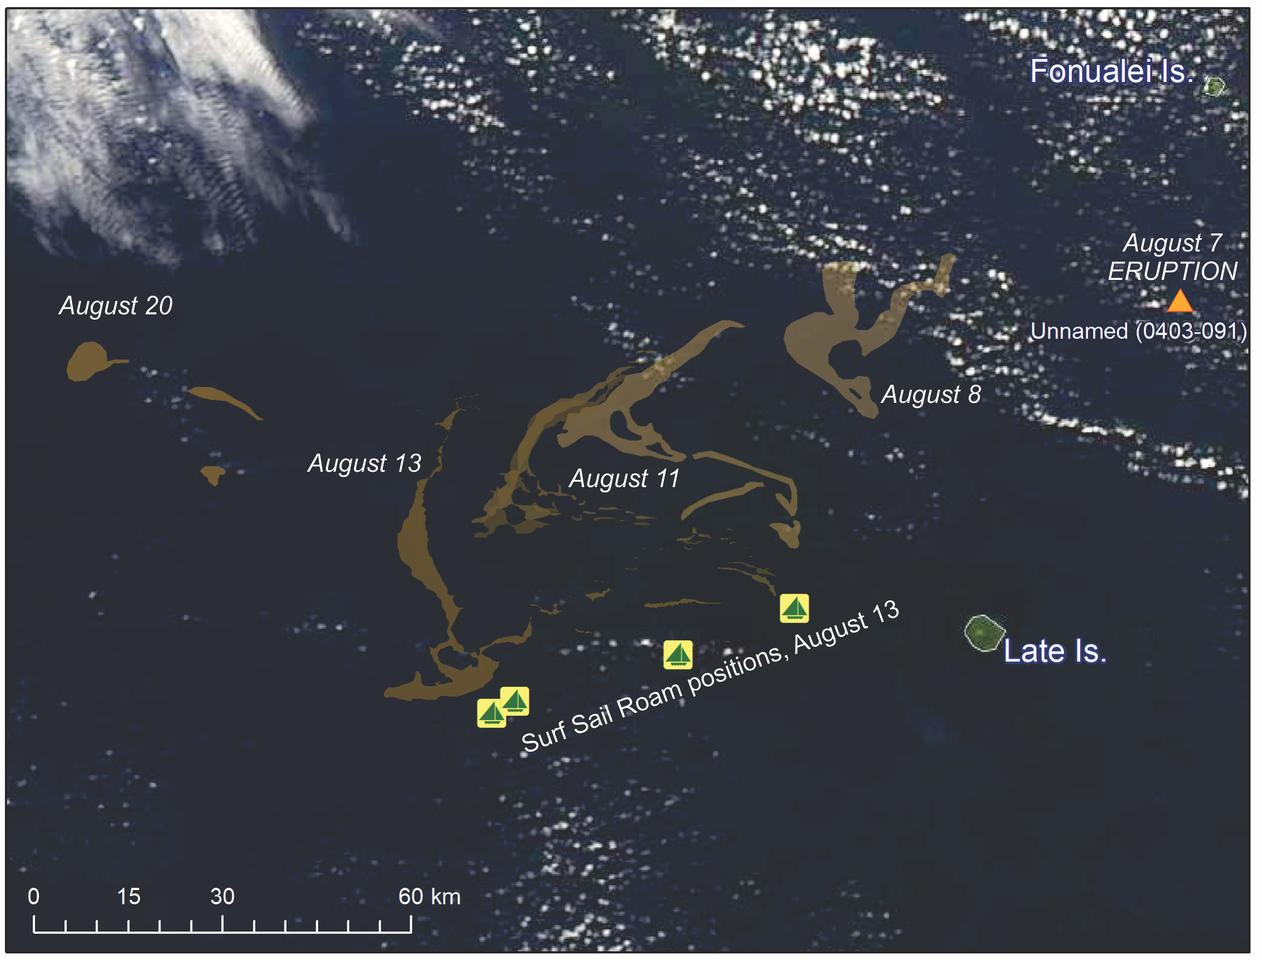 Satellite images show the journey of the pumice raft, as well as where the Surf Sail Roam catamaran encountered the rocks